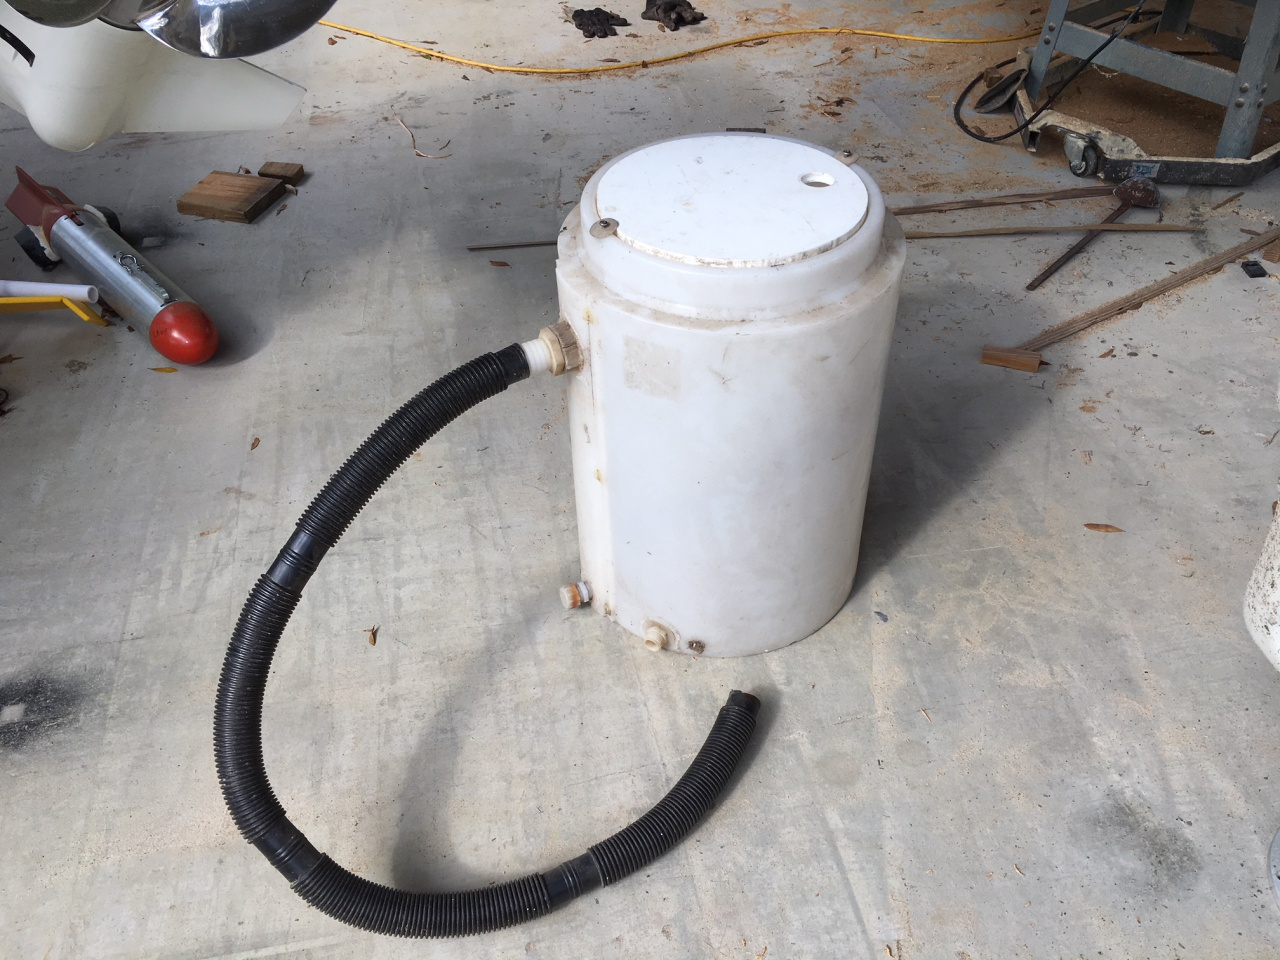 Live Well Captains Chair 55 Gallon Todd Fuel Tank